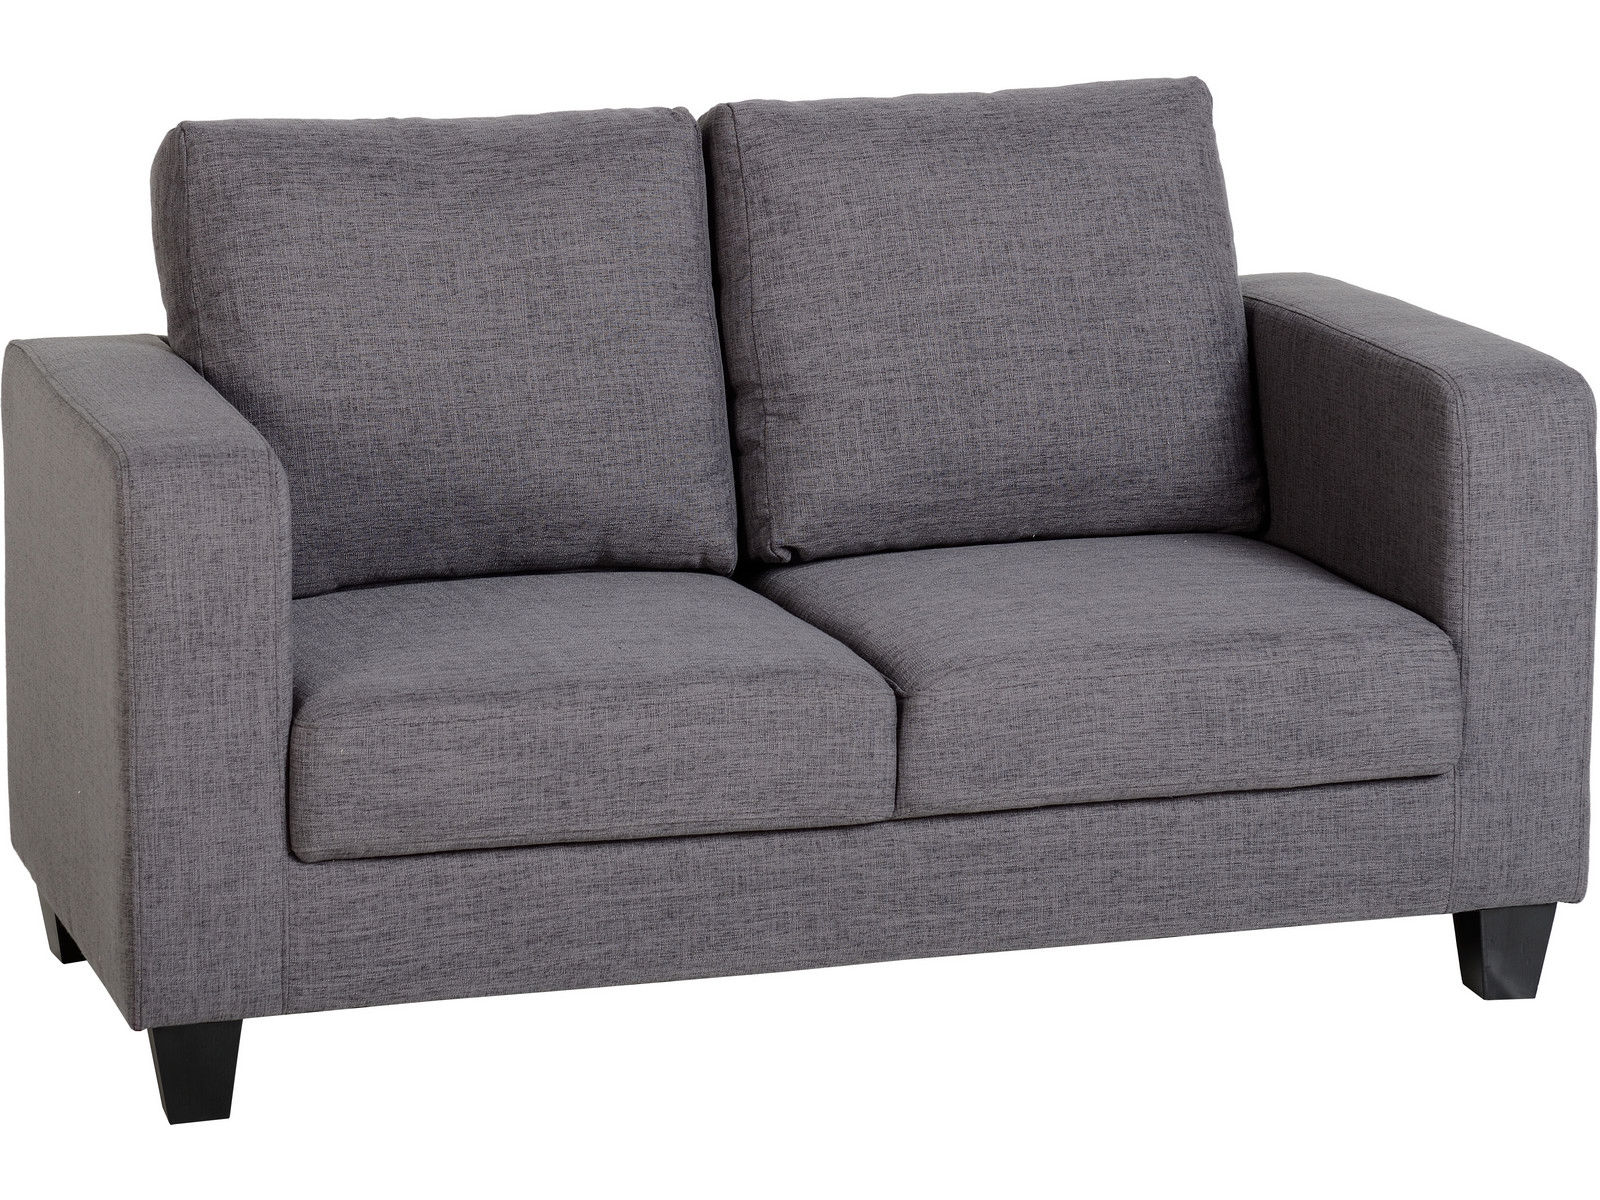 sofa box furniture protectors for sectional seconique tempo 2 seater in a grey fabric